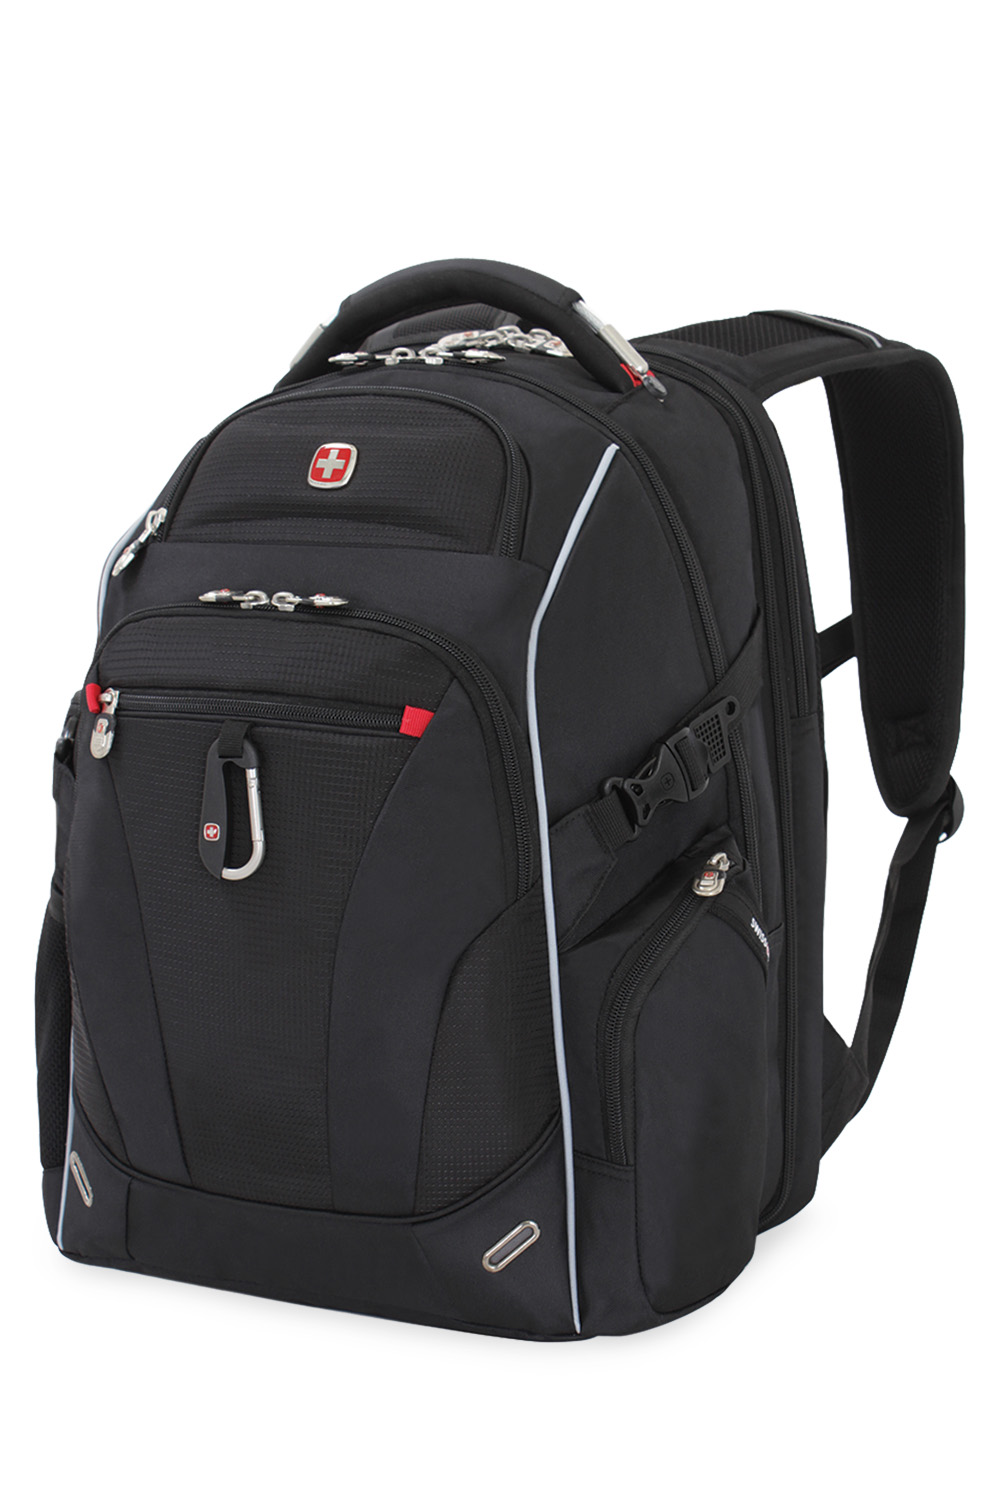 6752 ScanSmart TSA Laptop Backpack - Black